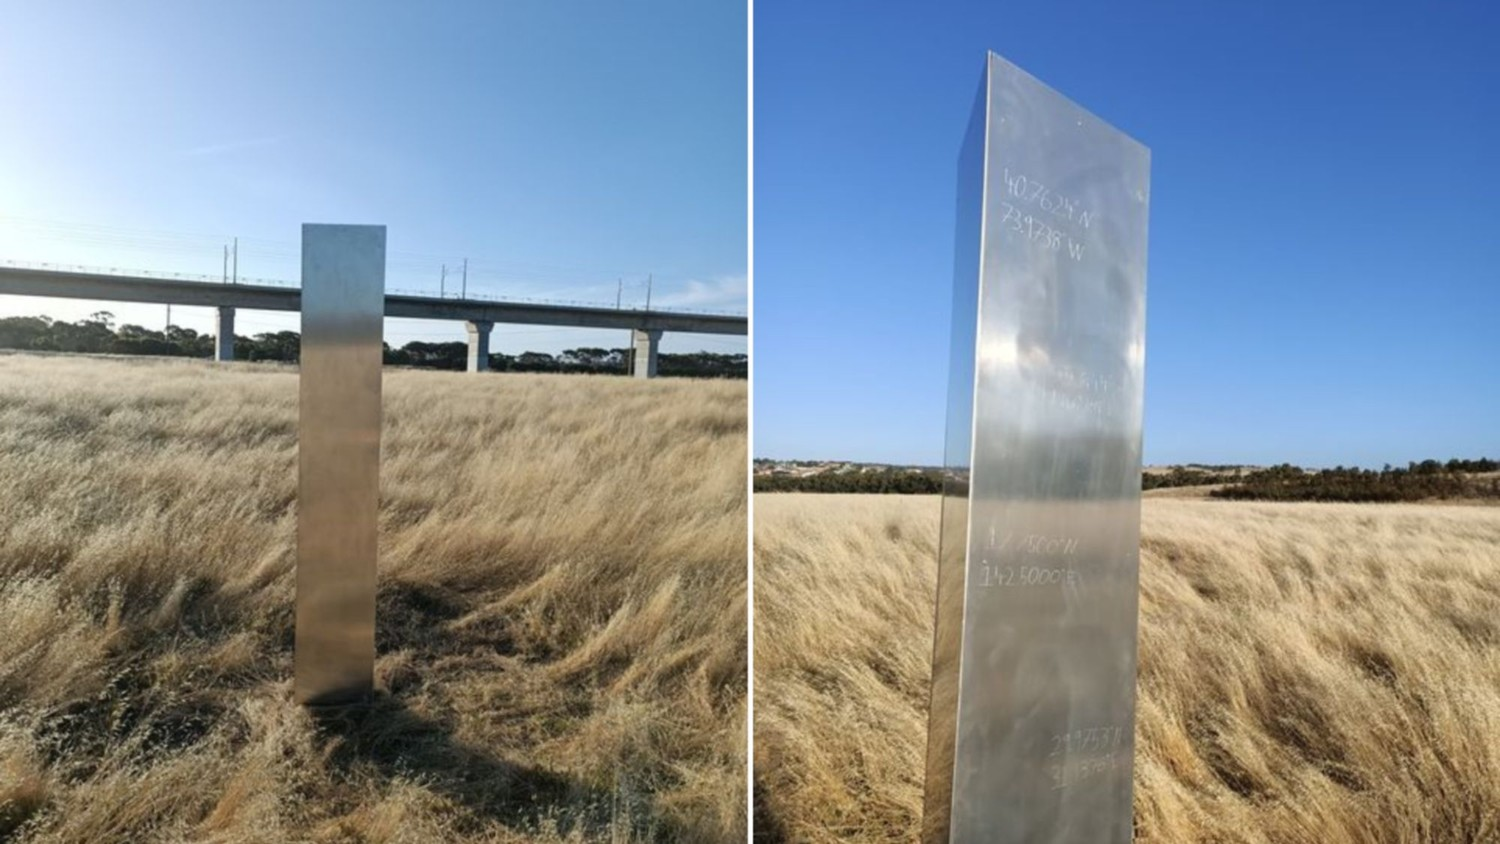 Australia has another mysterious monolith